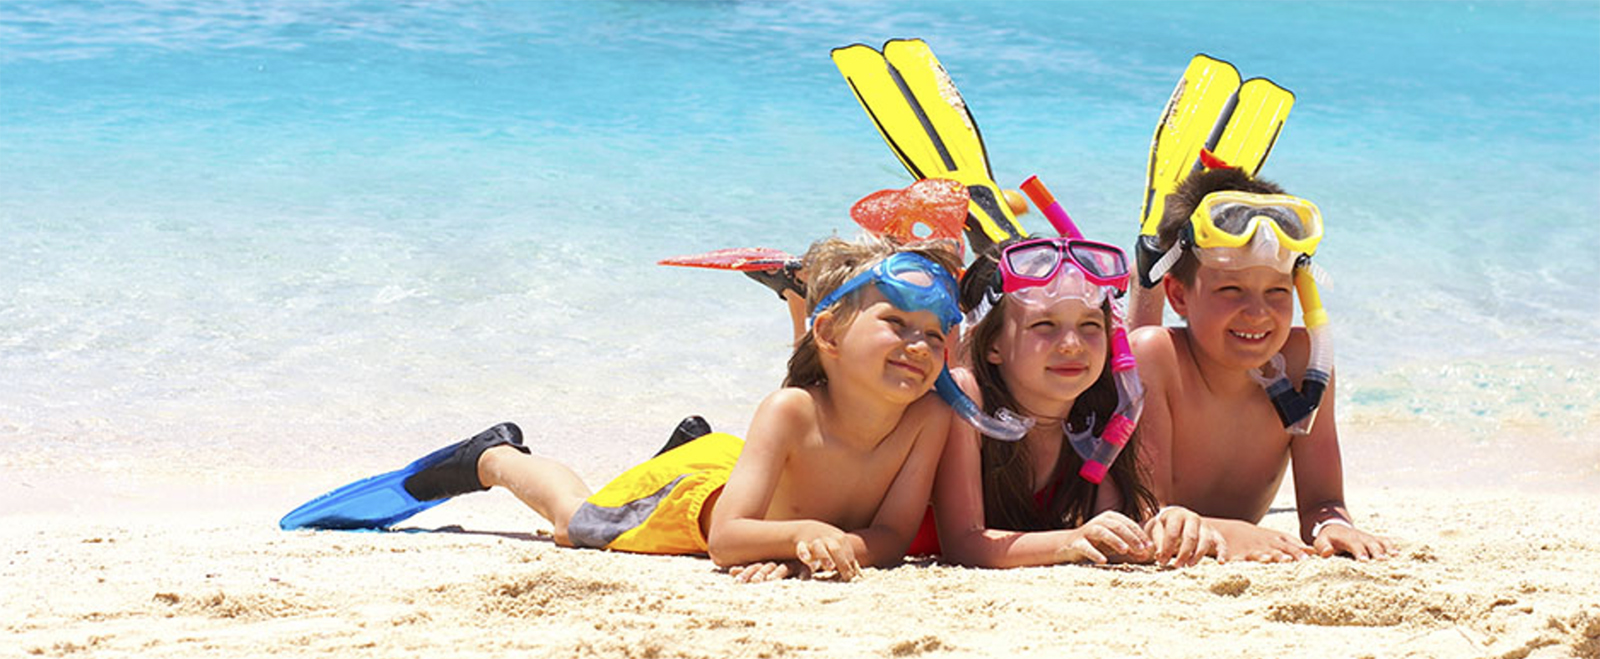 With kids by the sea: evergreen beach games!